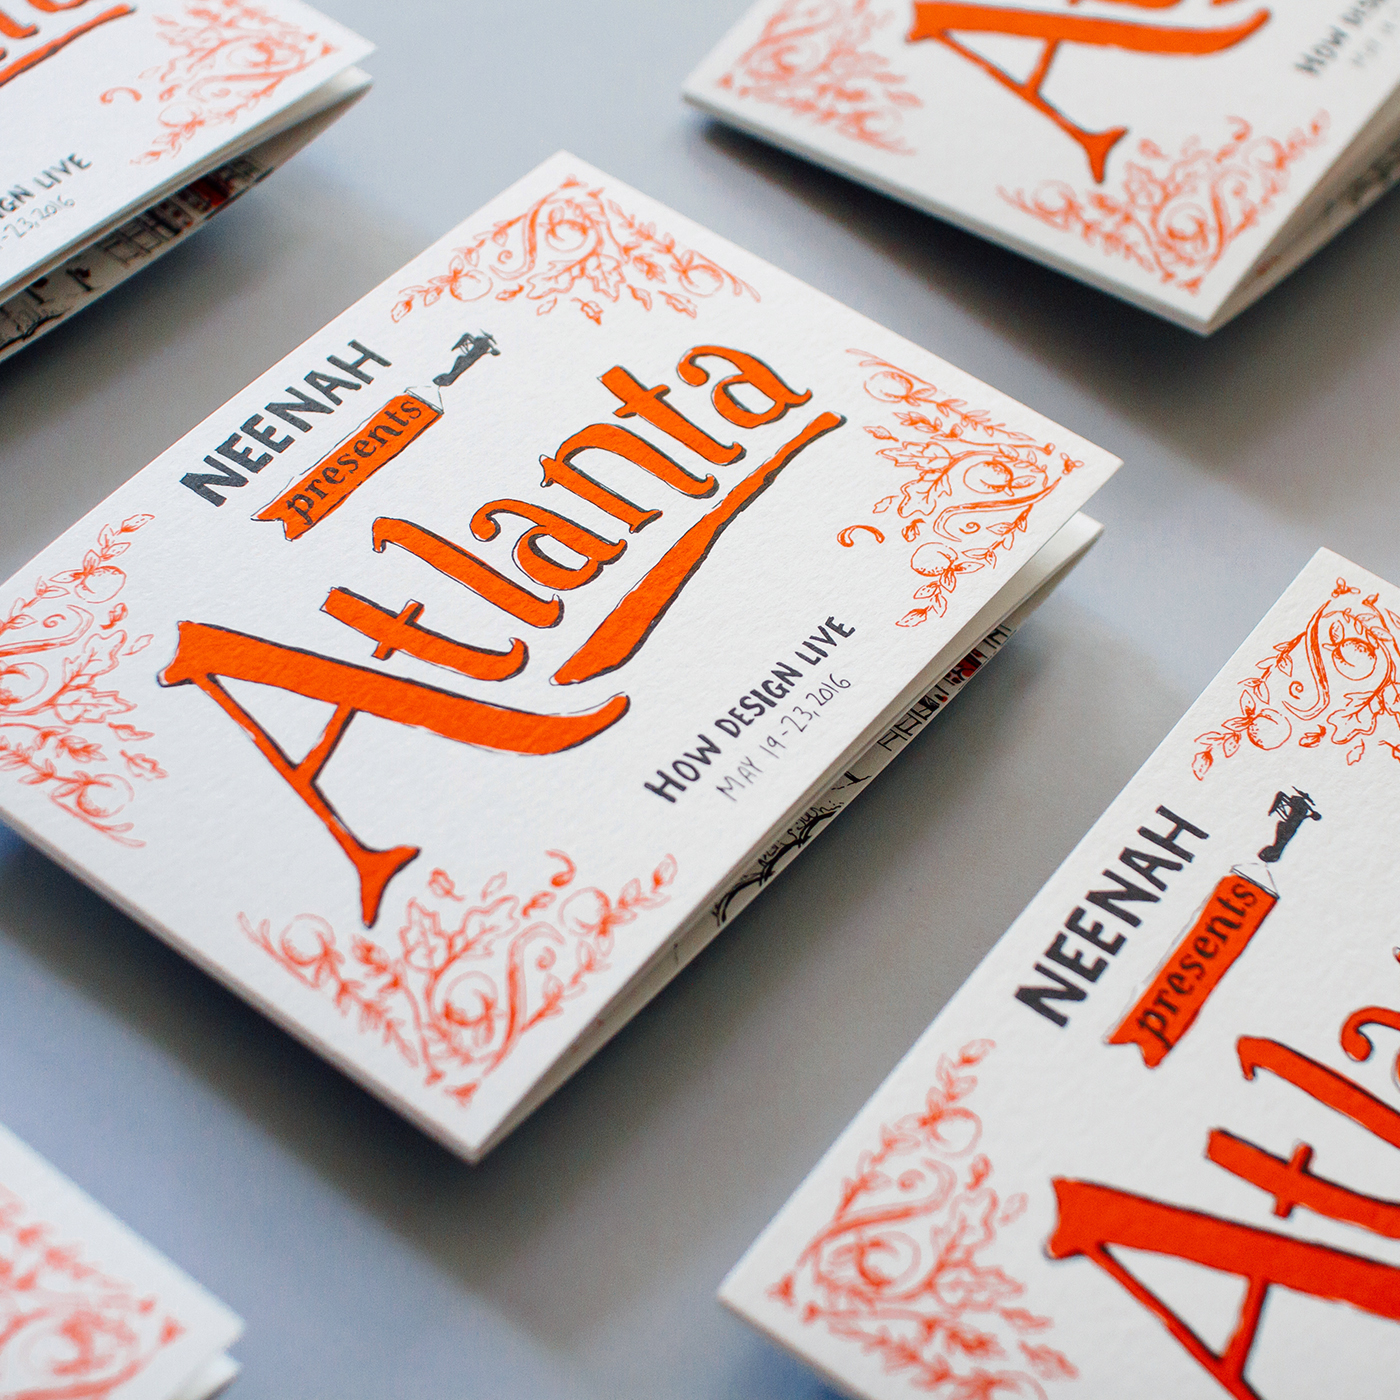 Neenah Presents Atlanta - An illustrated history of the Empire State of the South, with maps and guides to popular destinations around Atlanta's neighborhoods.